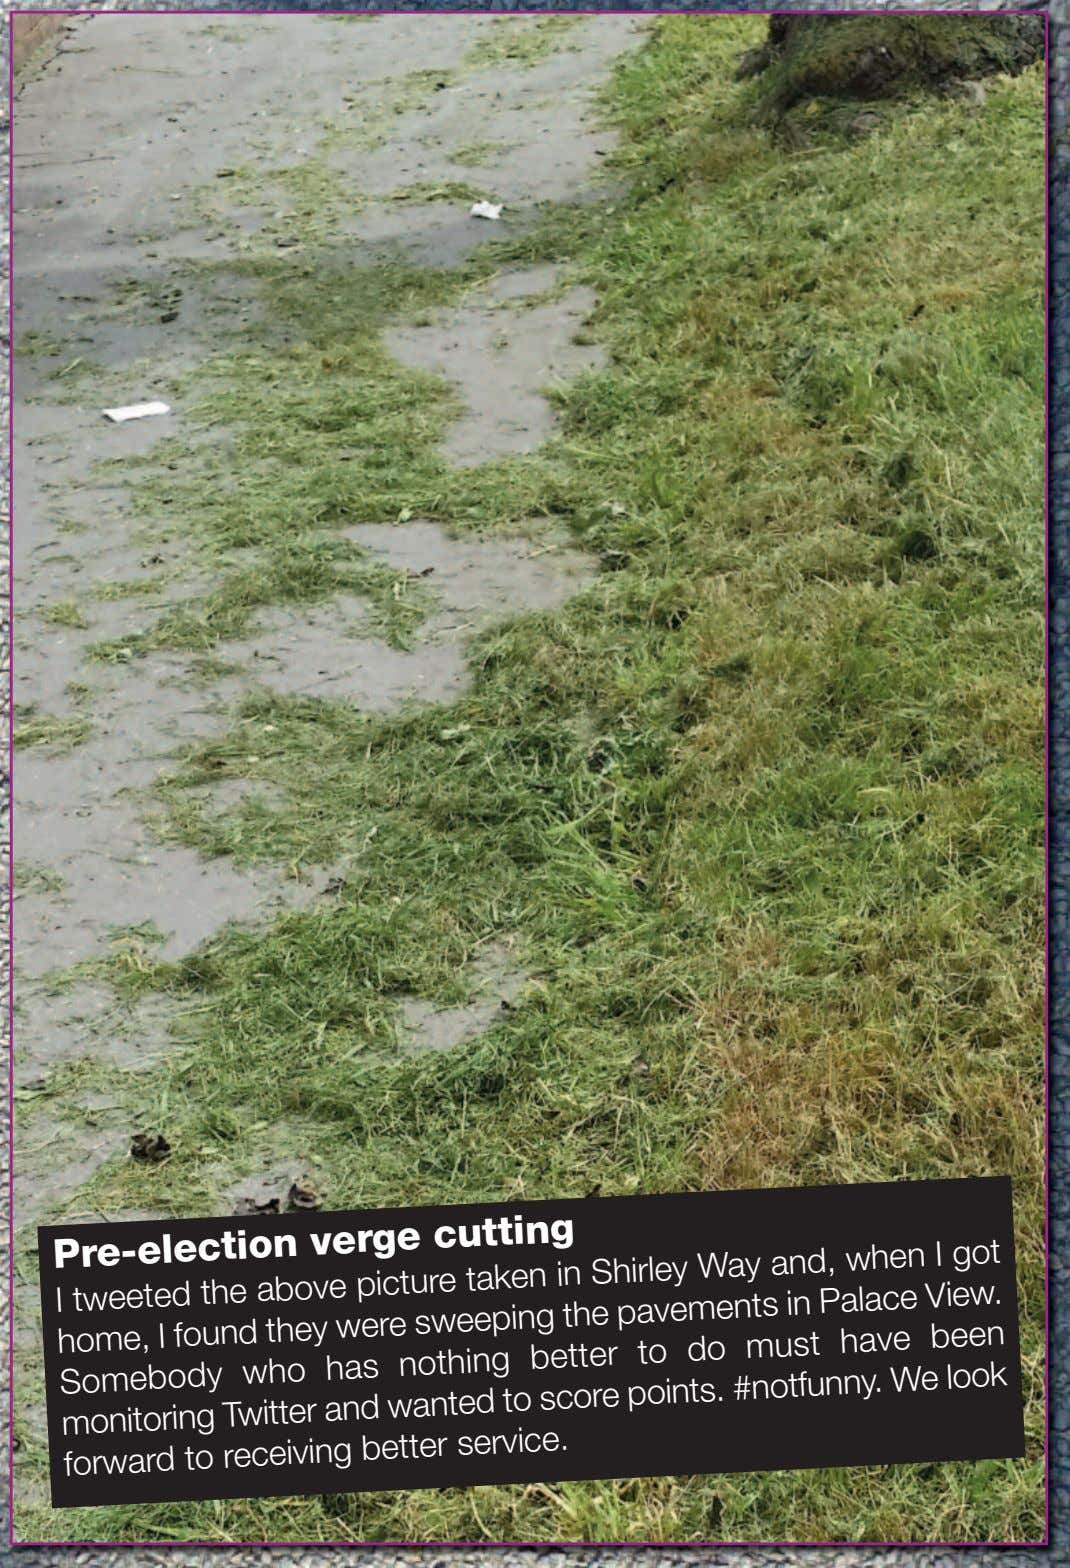 Pre-election verge cutting I tweeted the above picture taken in Shirley Way and, when I